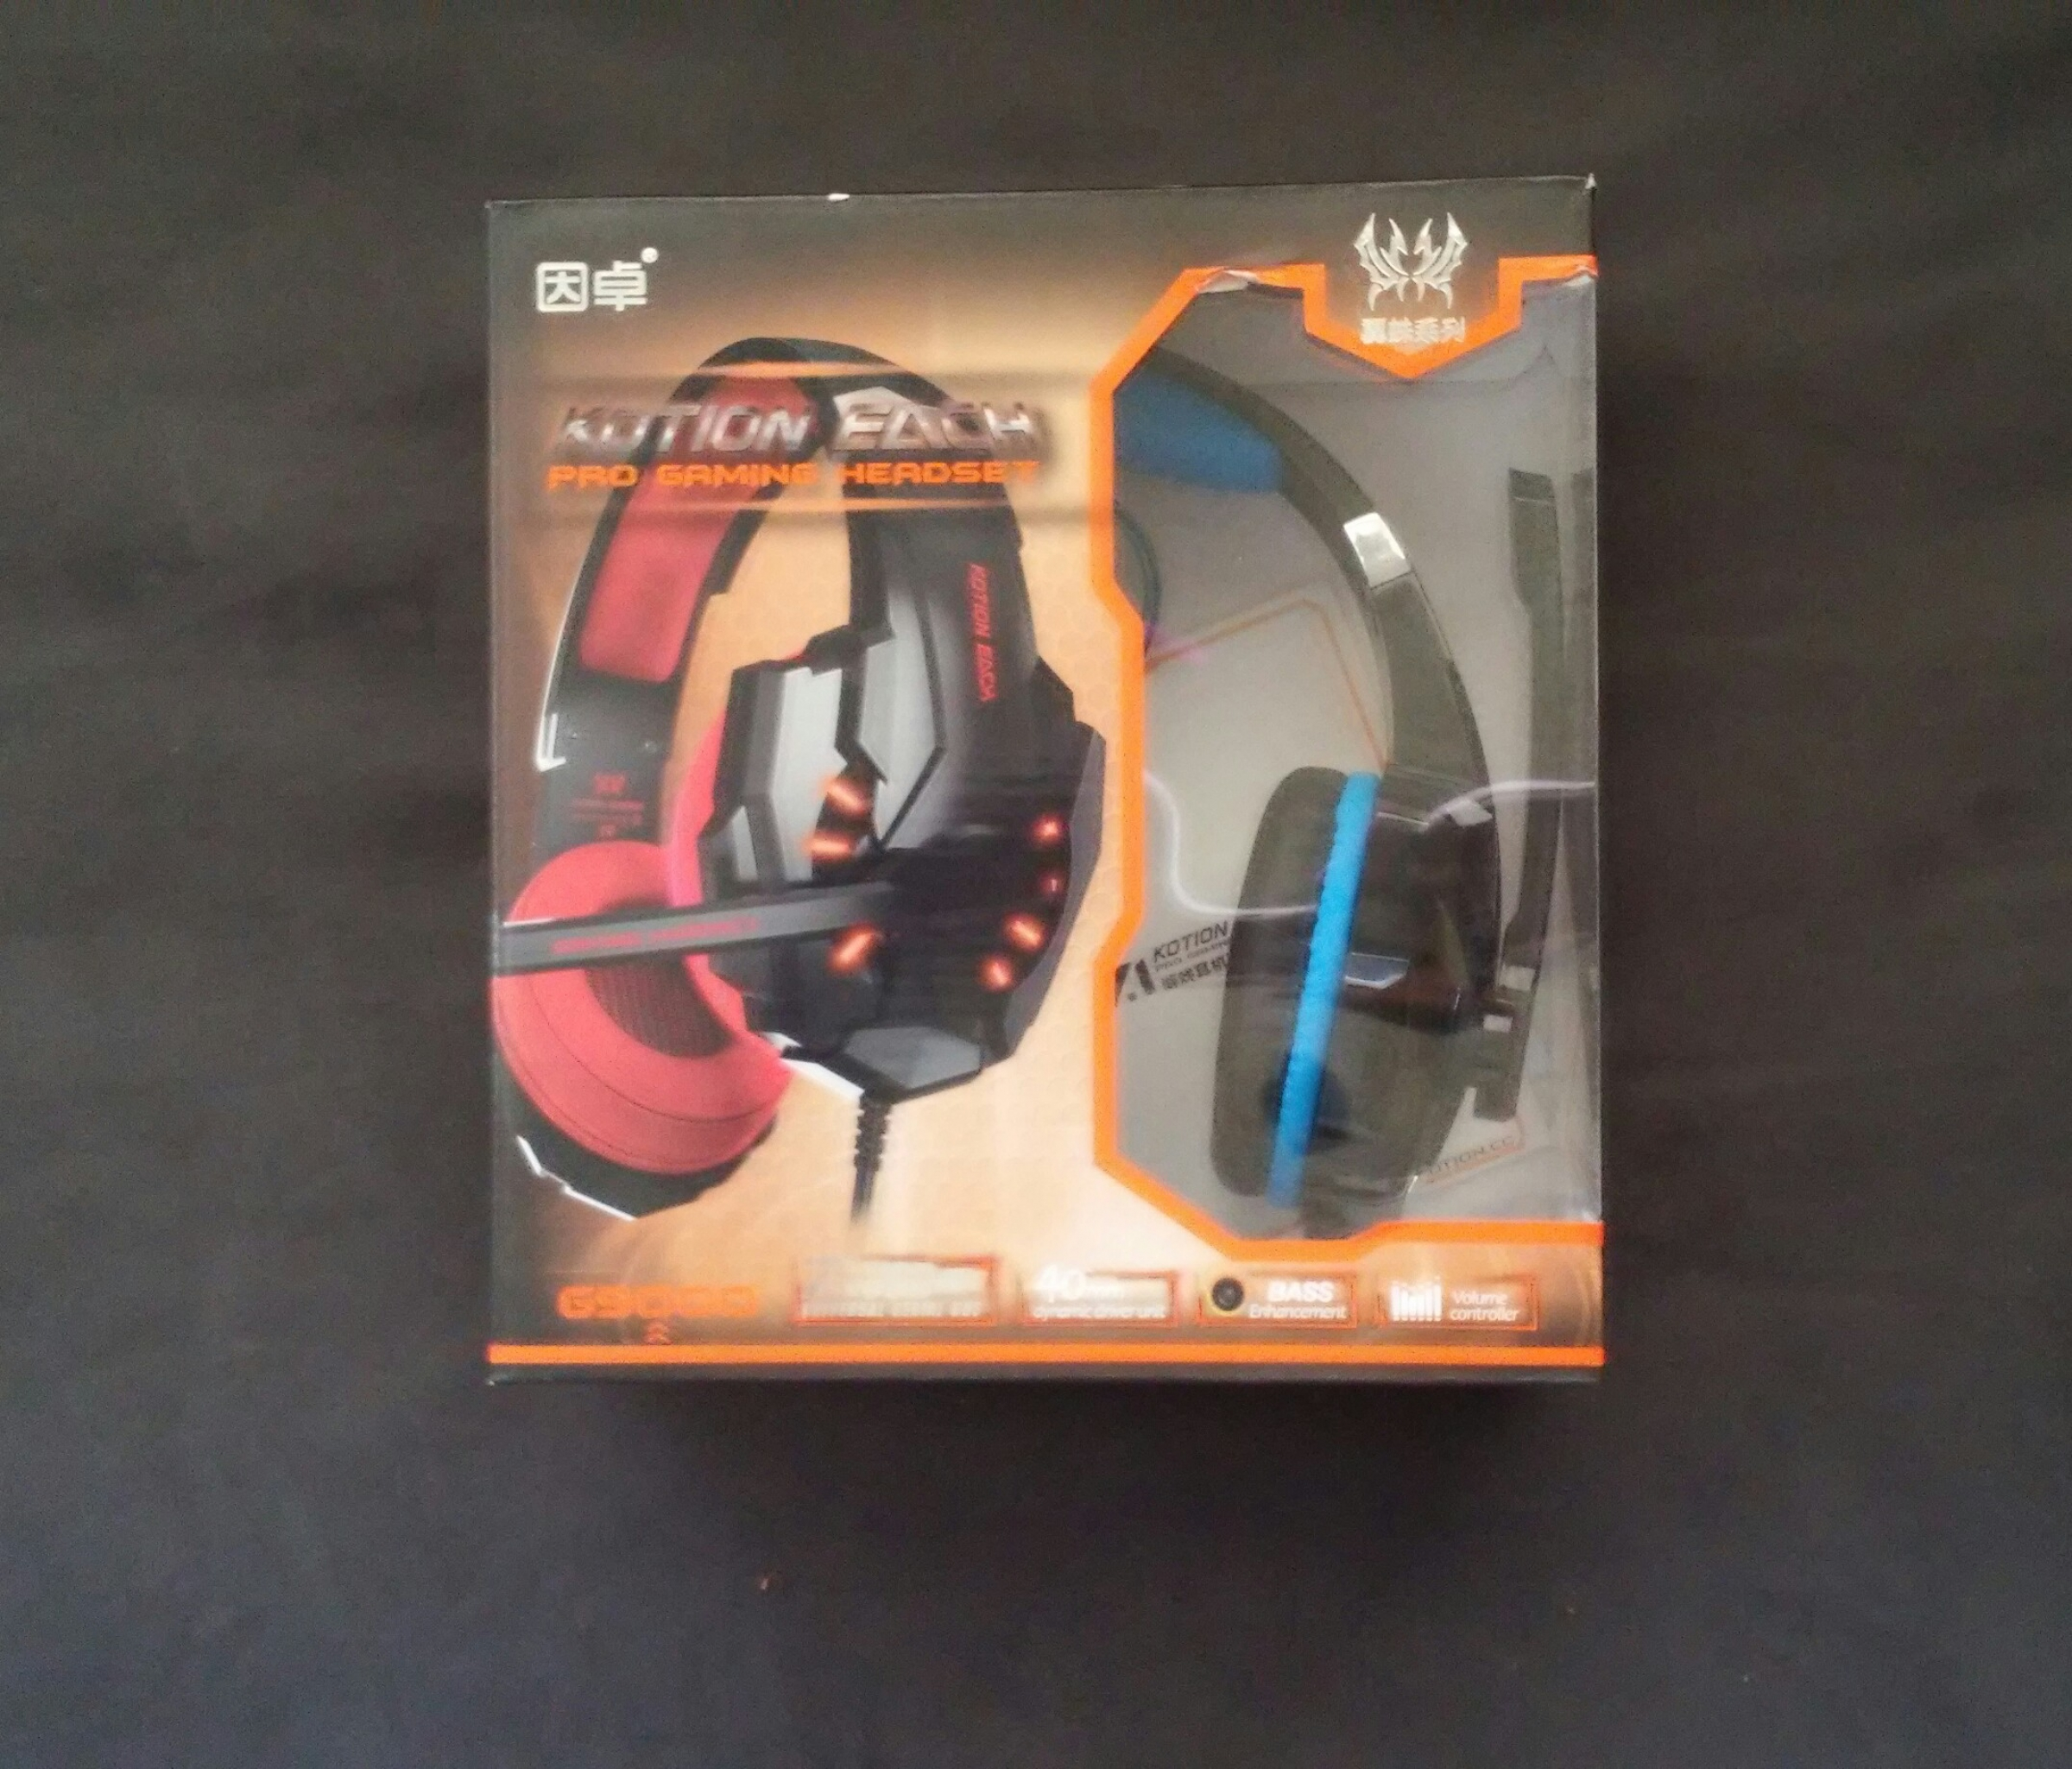 Awesome gamer headset